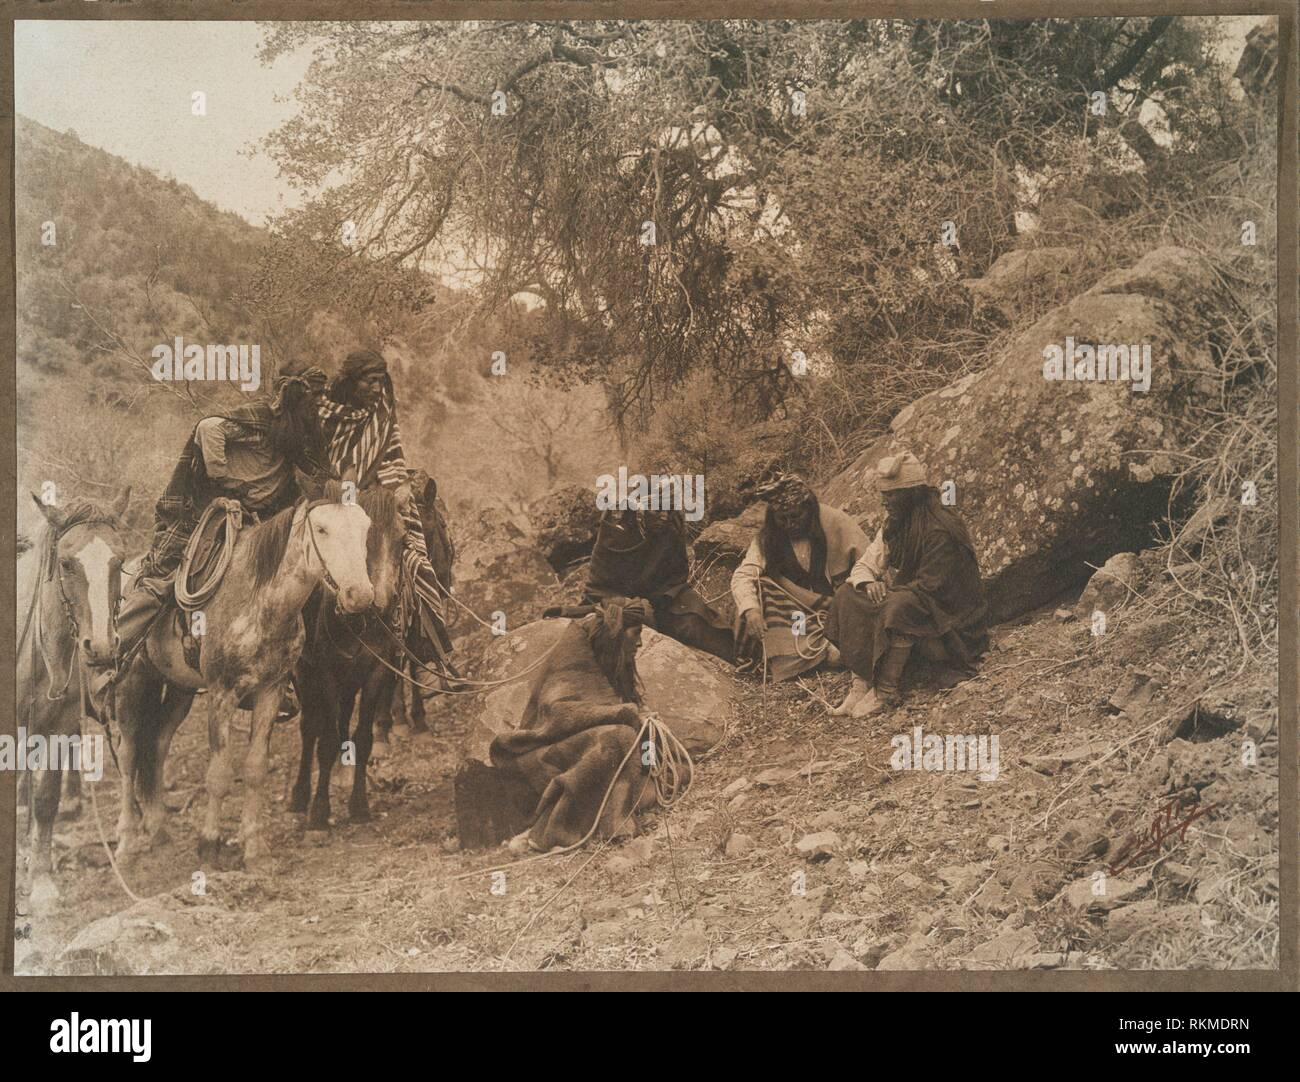 Apaches. Additional title: A story telling group of White Mountain Apaches. Curtis, Edward S., 1868-1952 (Photographer). Indian photographs. Date Stock Photo